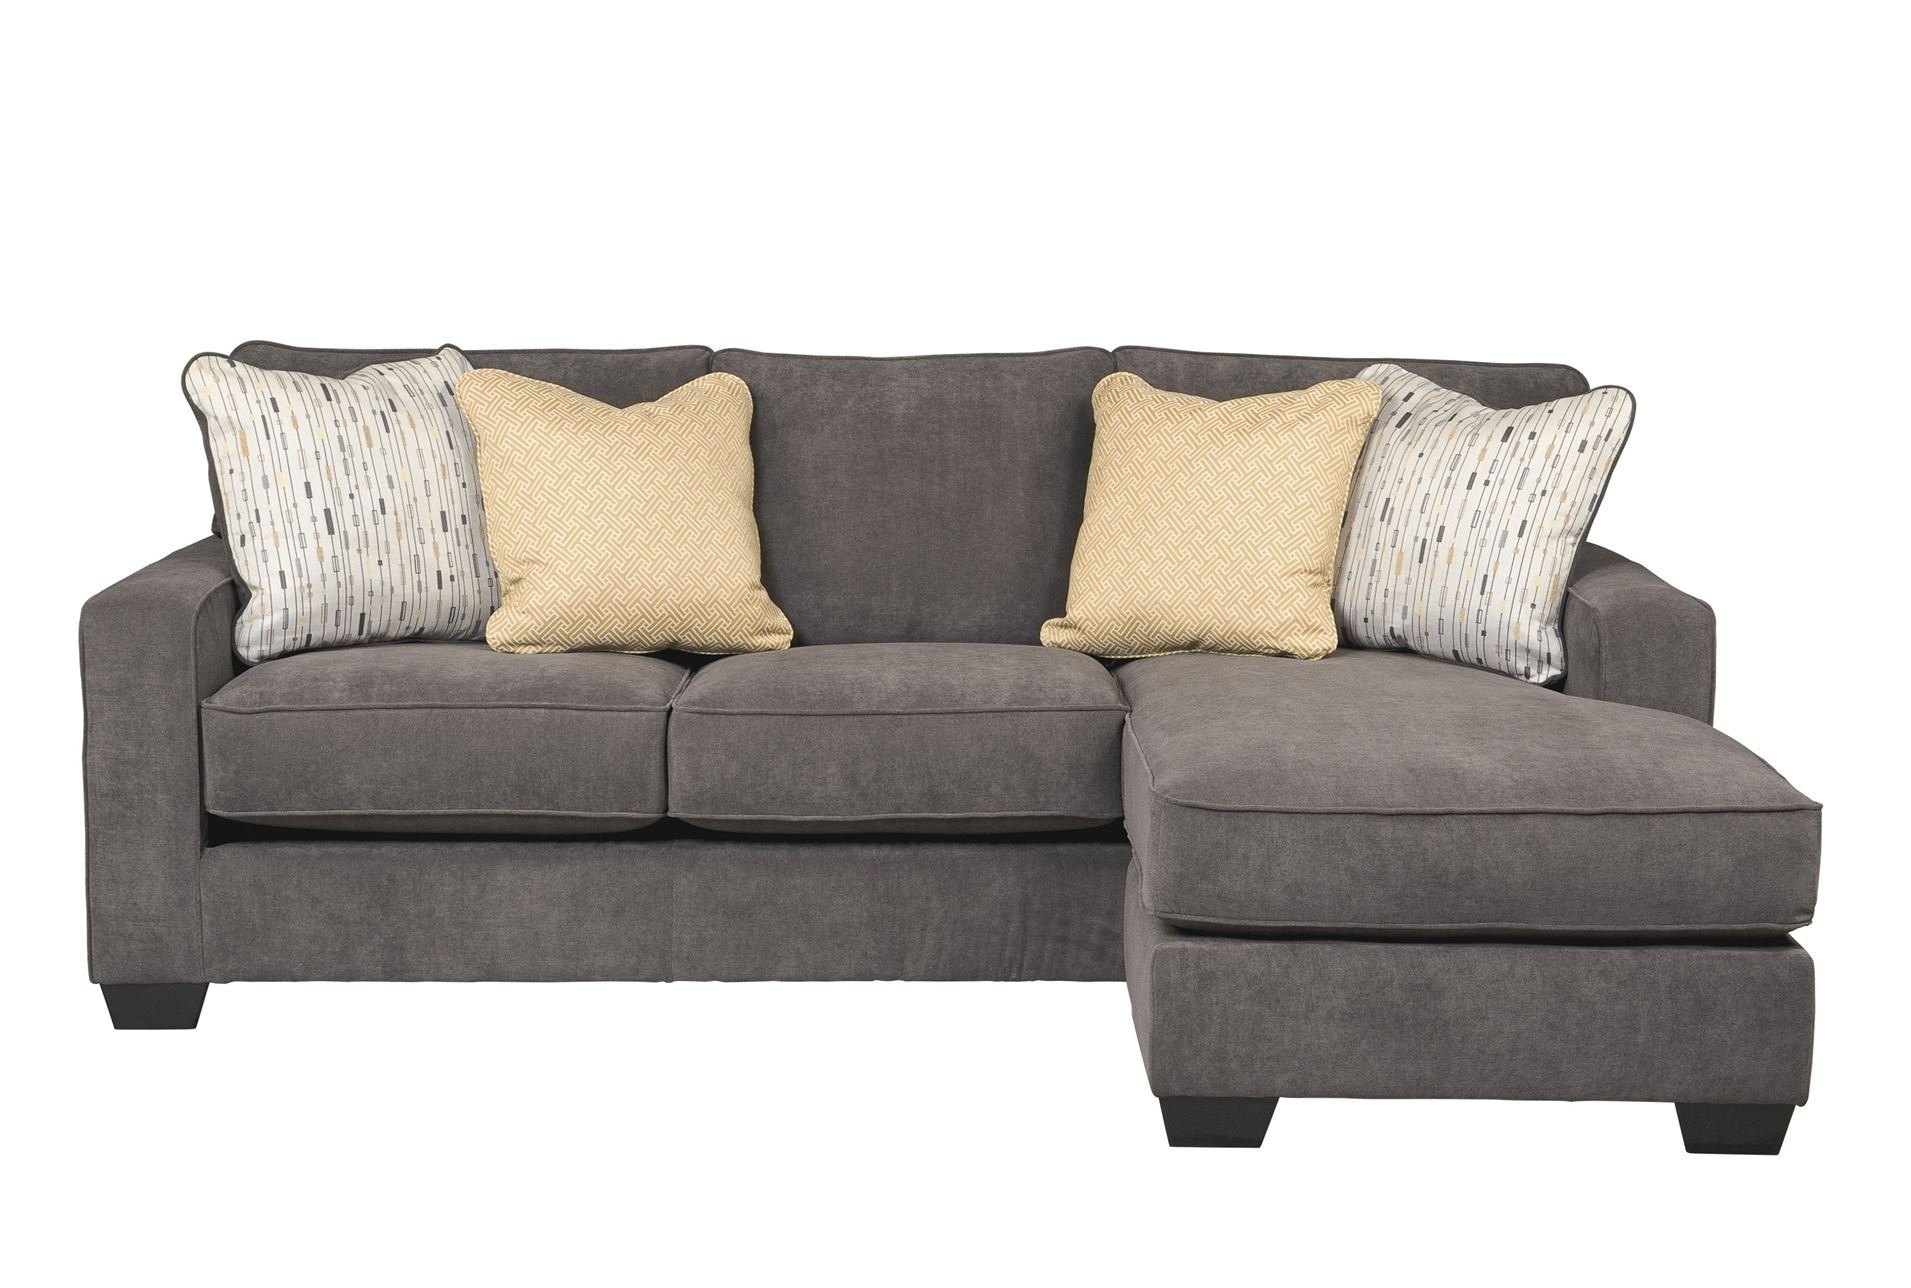 Chaise Couch Covers Inside Most Recent Furniture: Exciting Sectional Sofa Covers With Best Colors For (View 3 of 15)